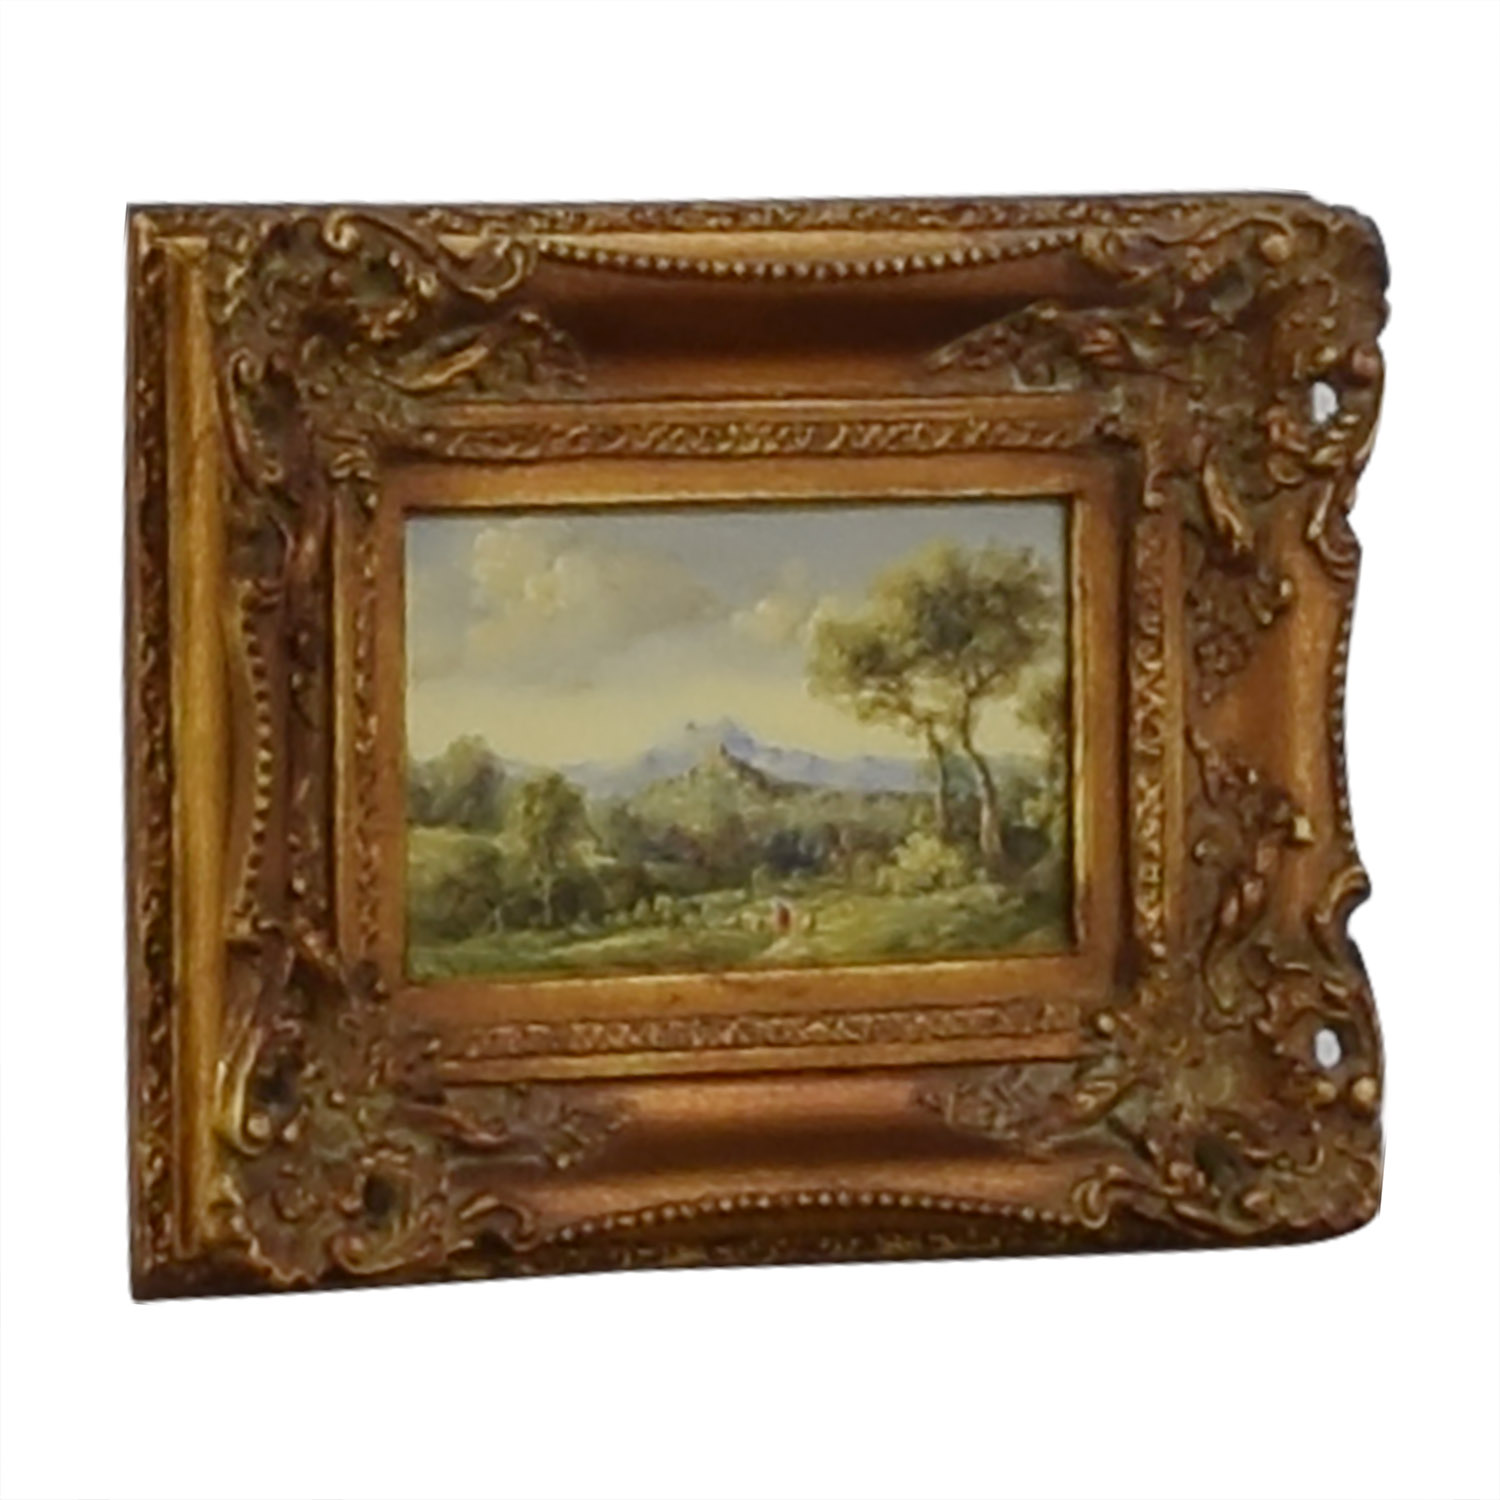 Framed Landscape Painting Decor